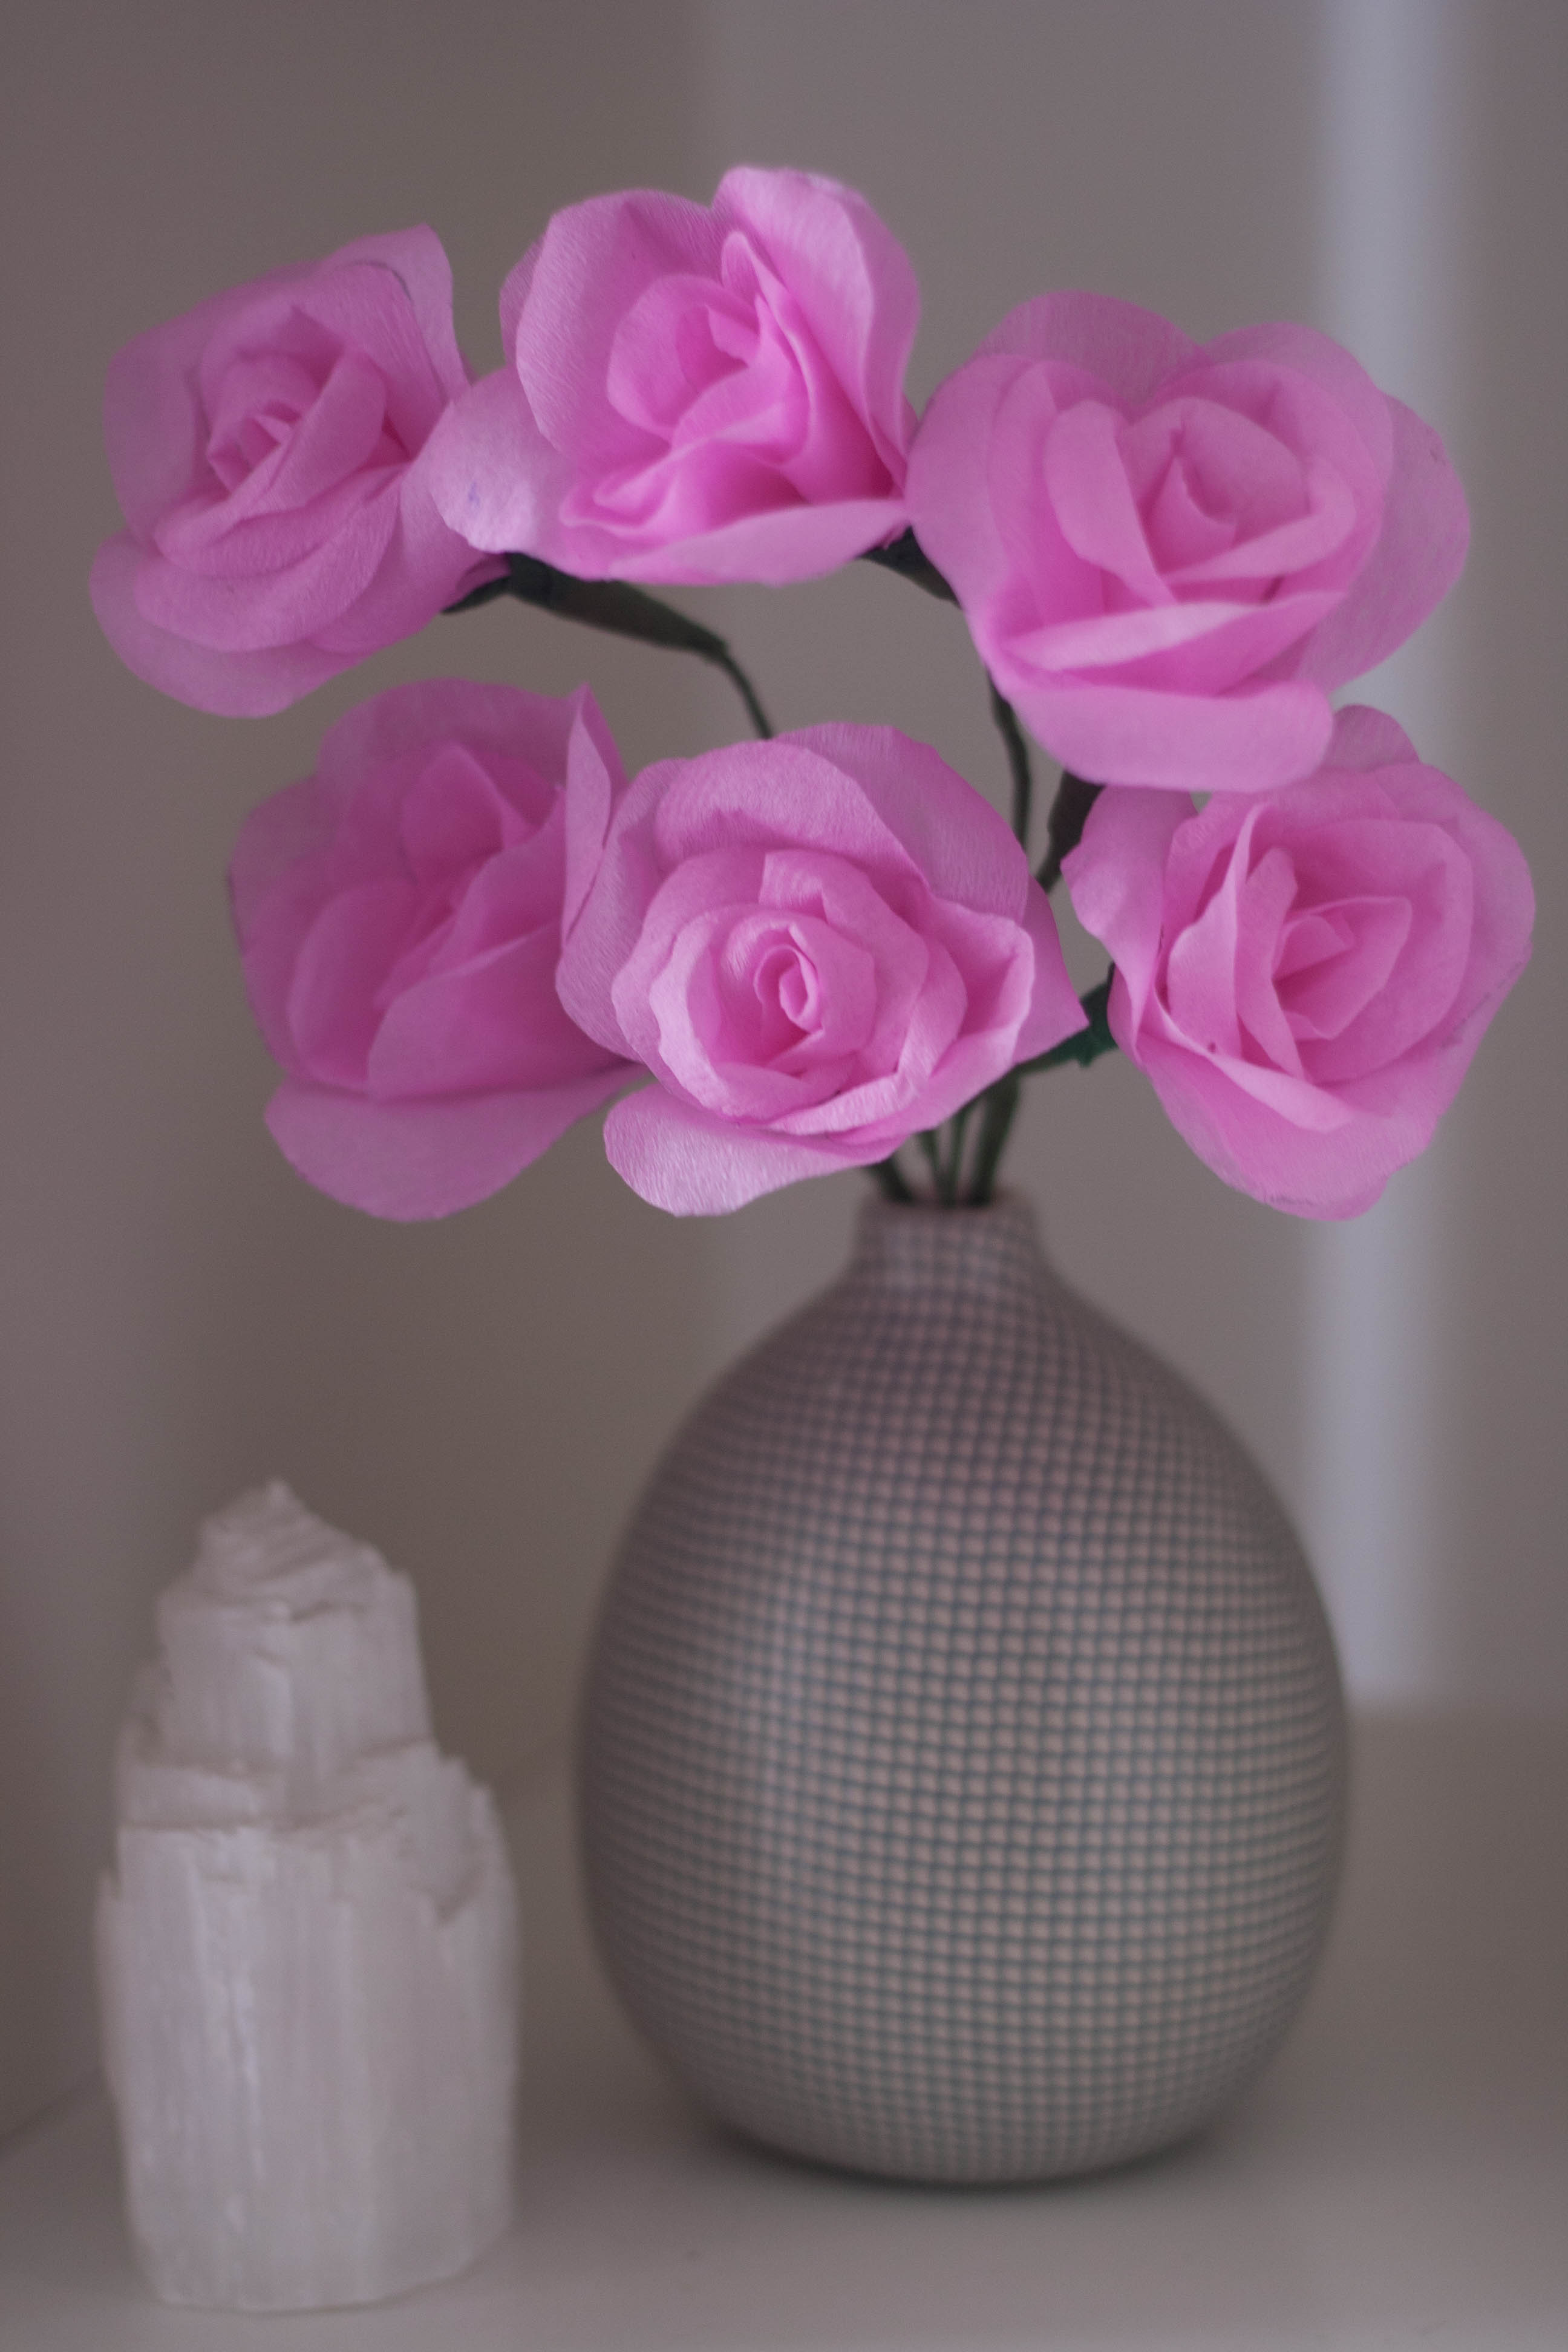 Make Your Own Beautiful Crepe Paper Rose Flowers Adventures In Craft